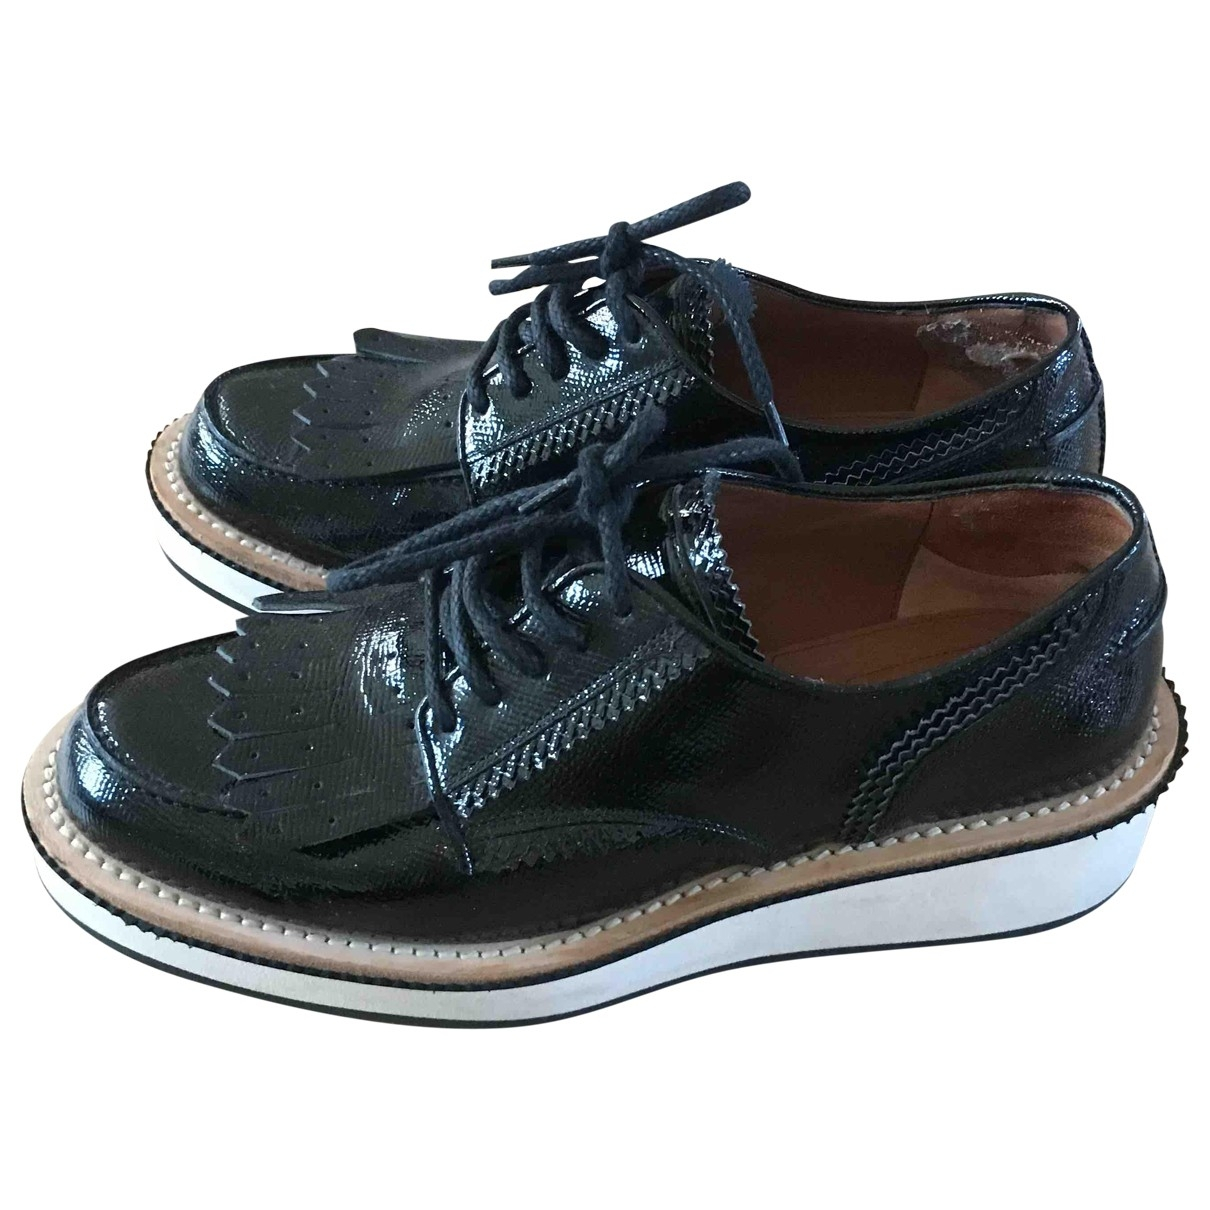 Givenchy \N Black Patent leather Lace ups for Women 39 EU